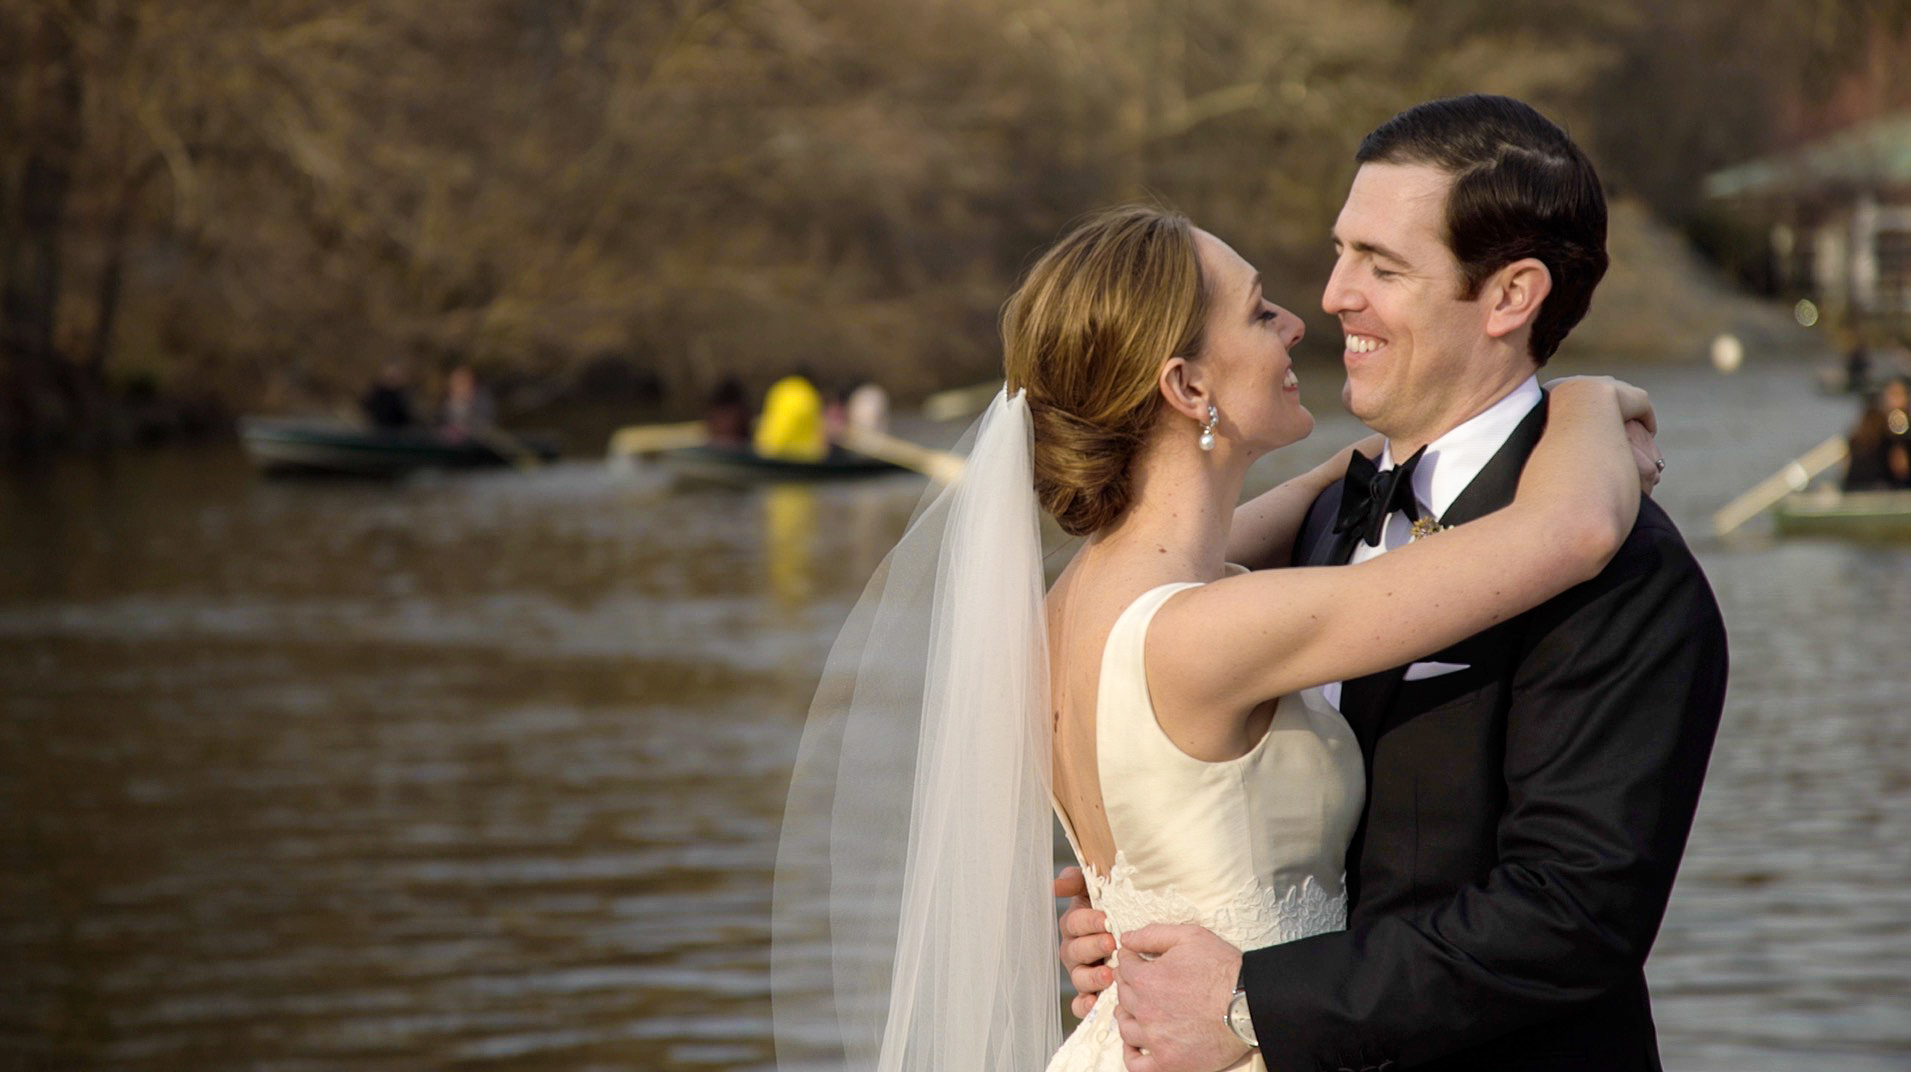 Amanda + Will | New York, New York | Central Park Boathouse